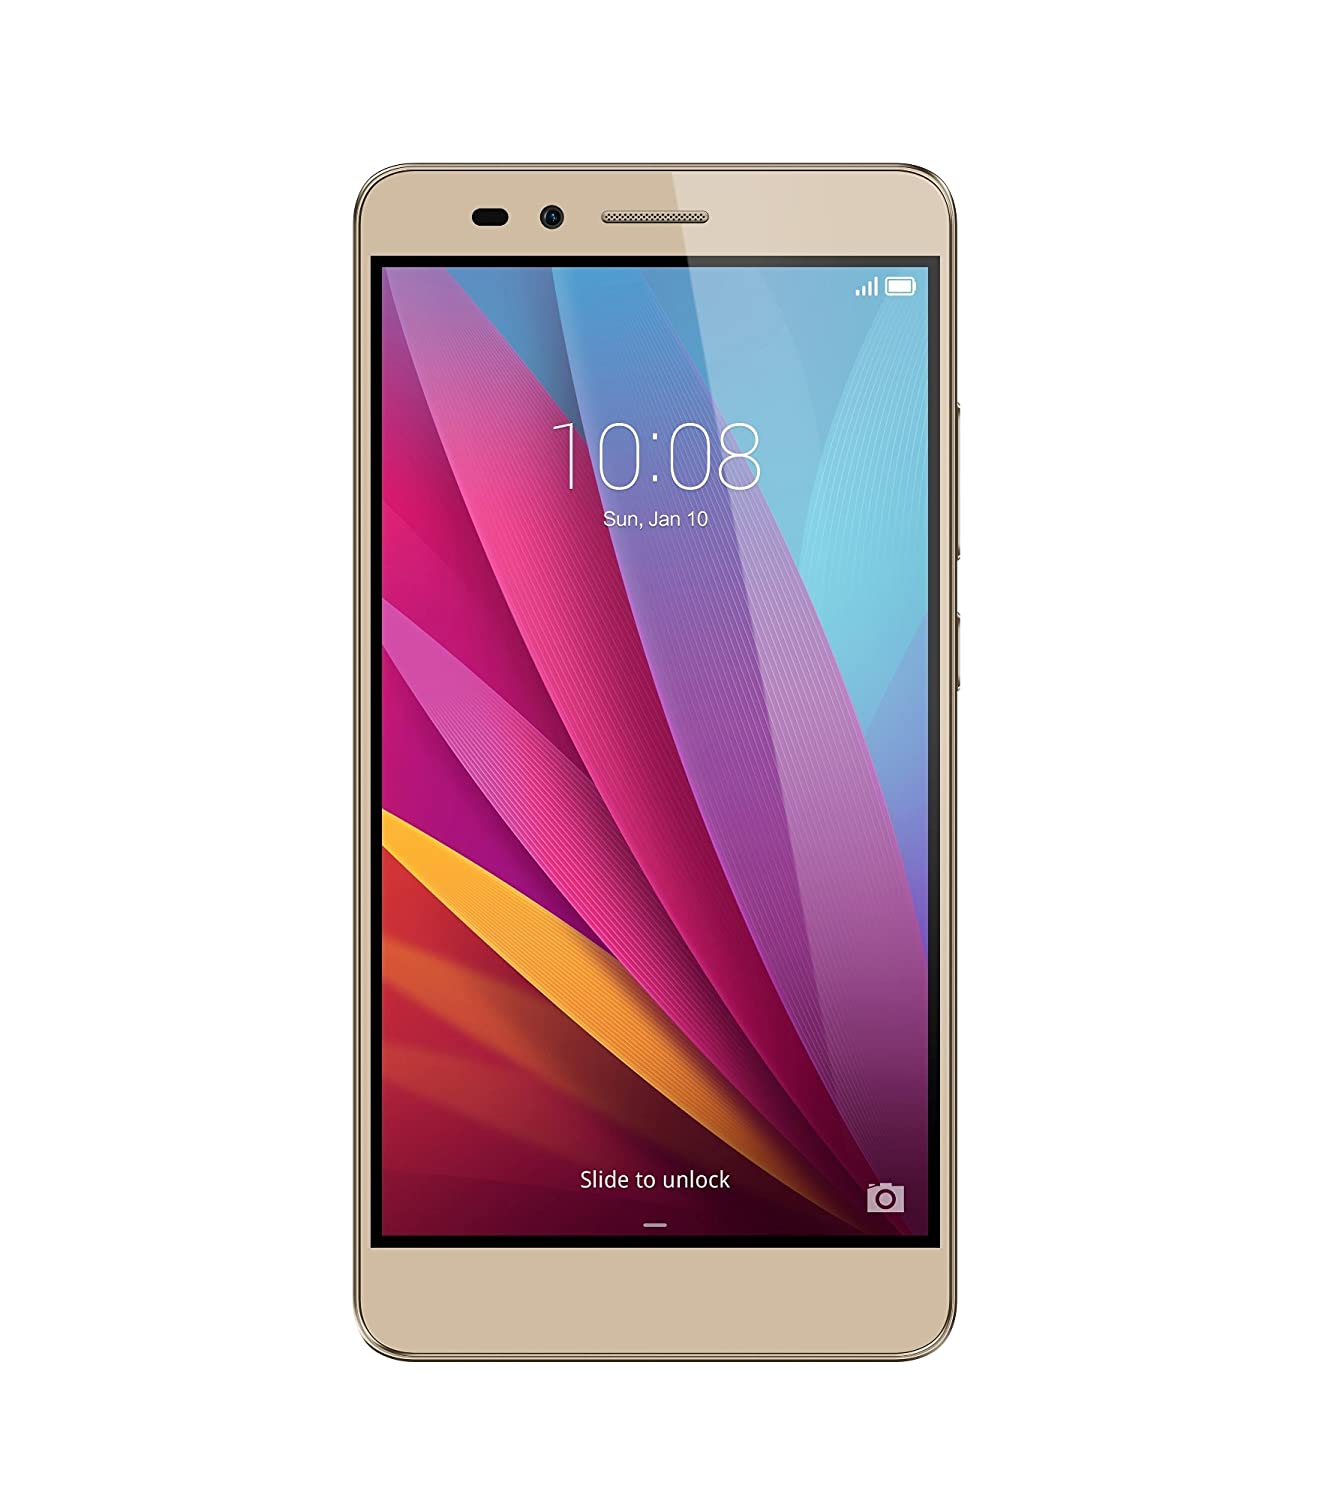 Honor 5X Metal Body Unlocked Smartphone - Gold 16GB (U.S. Warranty)